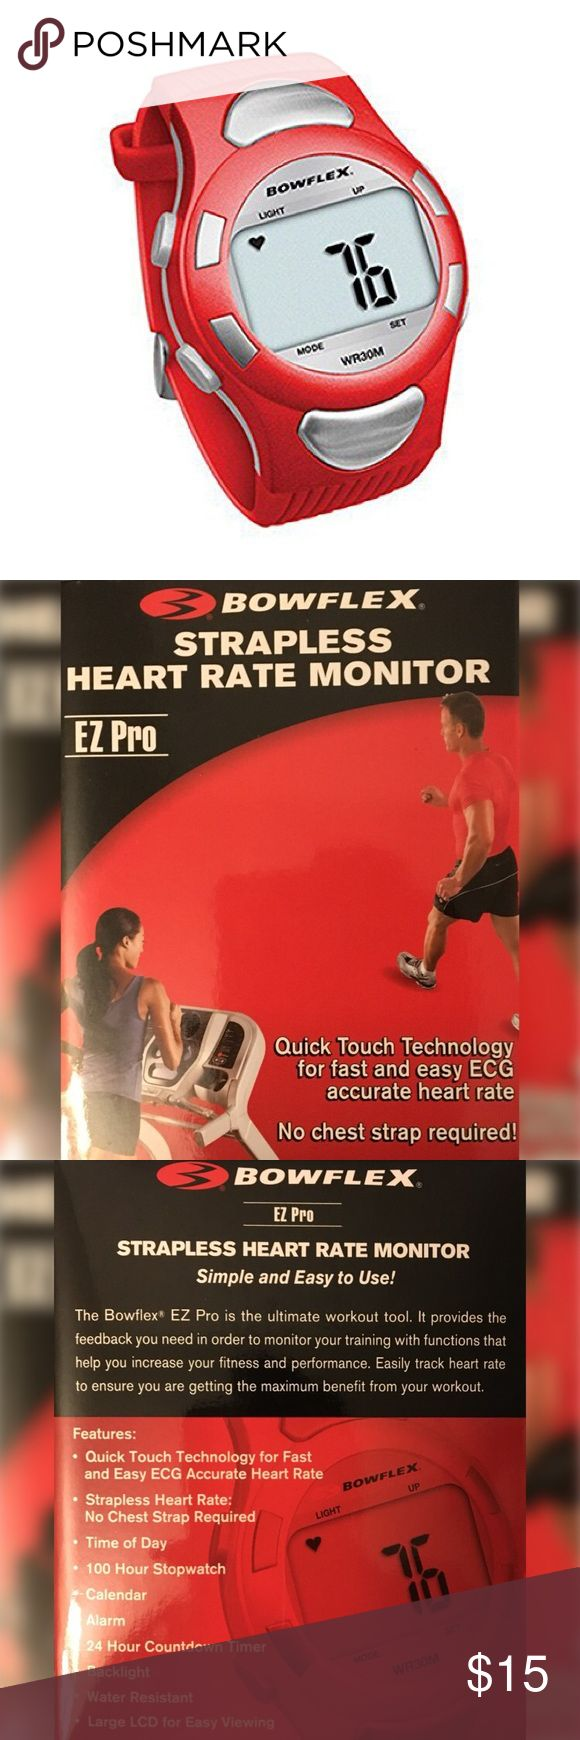 """BOWFLEX Red """"Fitbit"""" Wrist Heart Rate Monitor Heart rate monitor that doubles as a watch  Backlit LCD screen  Accurate report of ECG heart rate  Displays time and date  100-hour stopwatch  24-hour countdown timer  Multiple colors  Water-resistant up to 30 meters  Multiple size adjustments with secure metal clasp Bowflex Accessories Watches"""